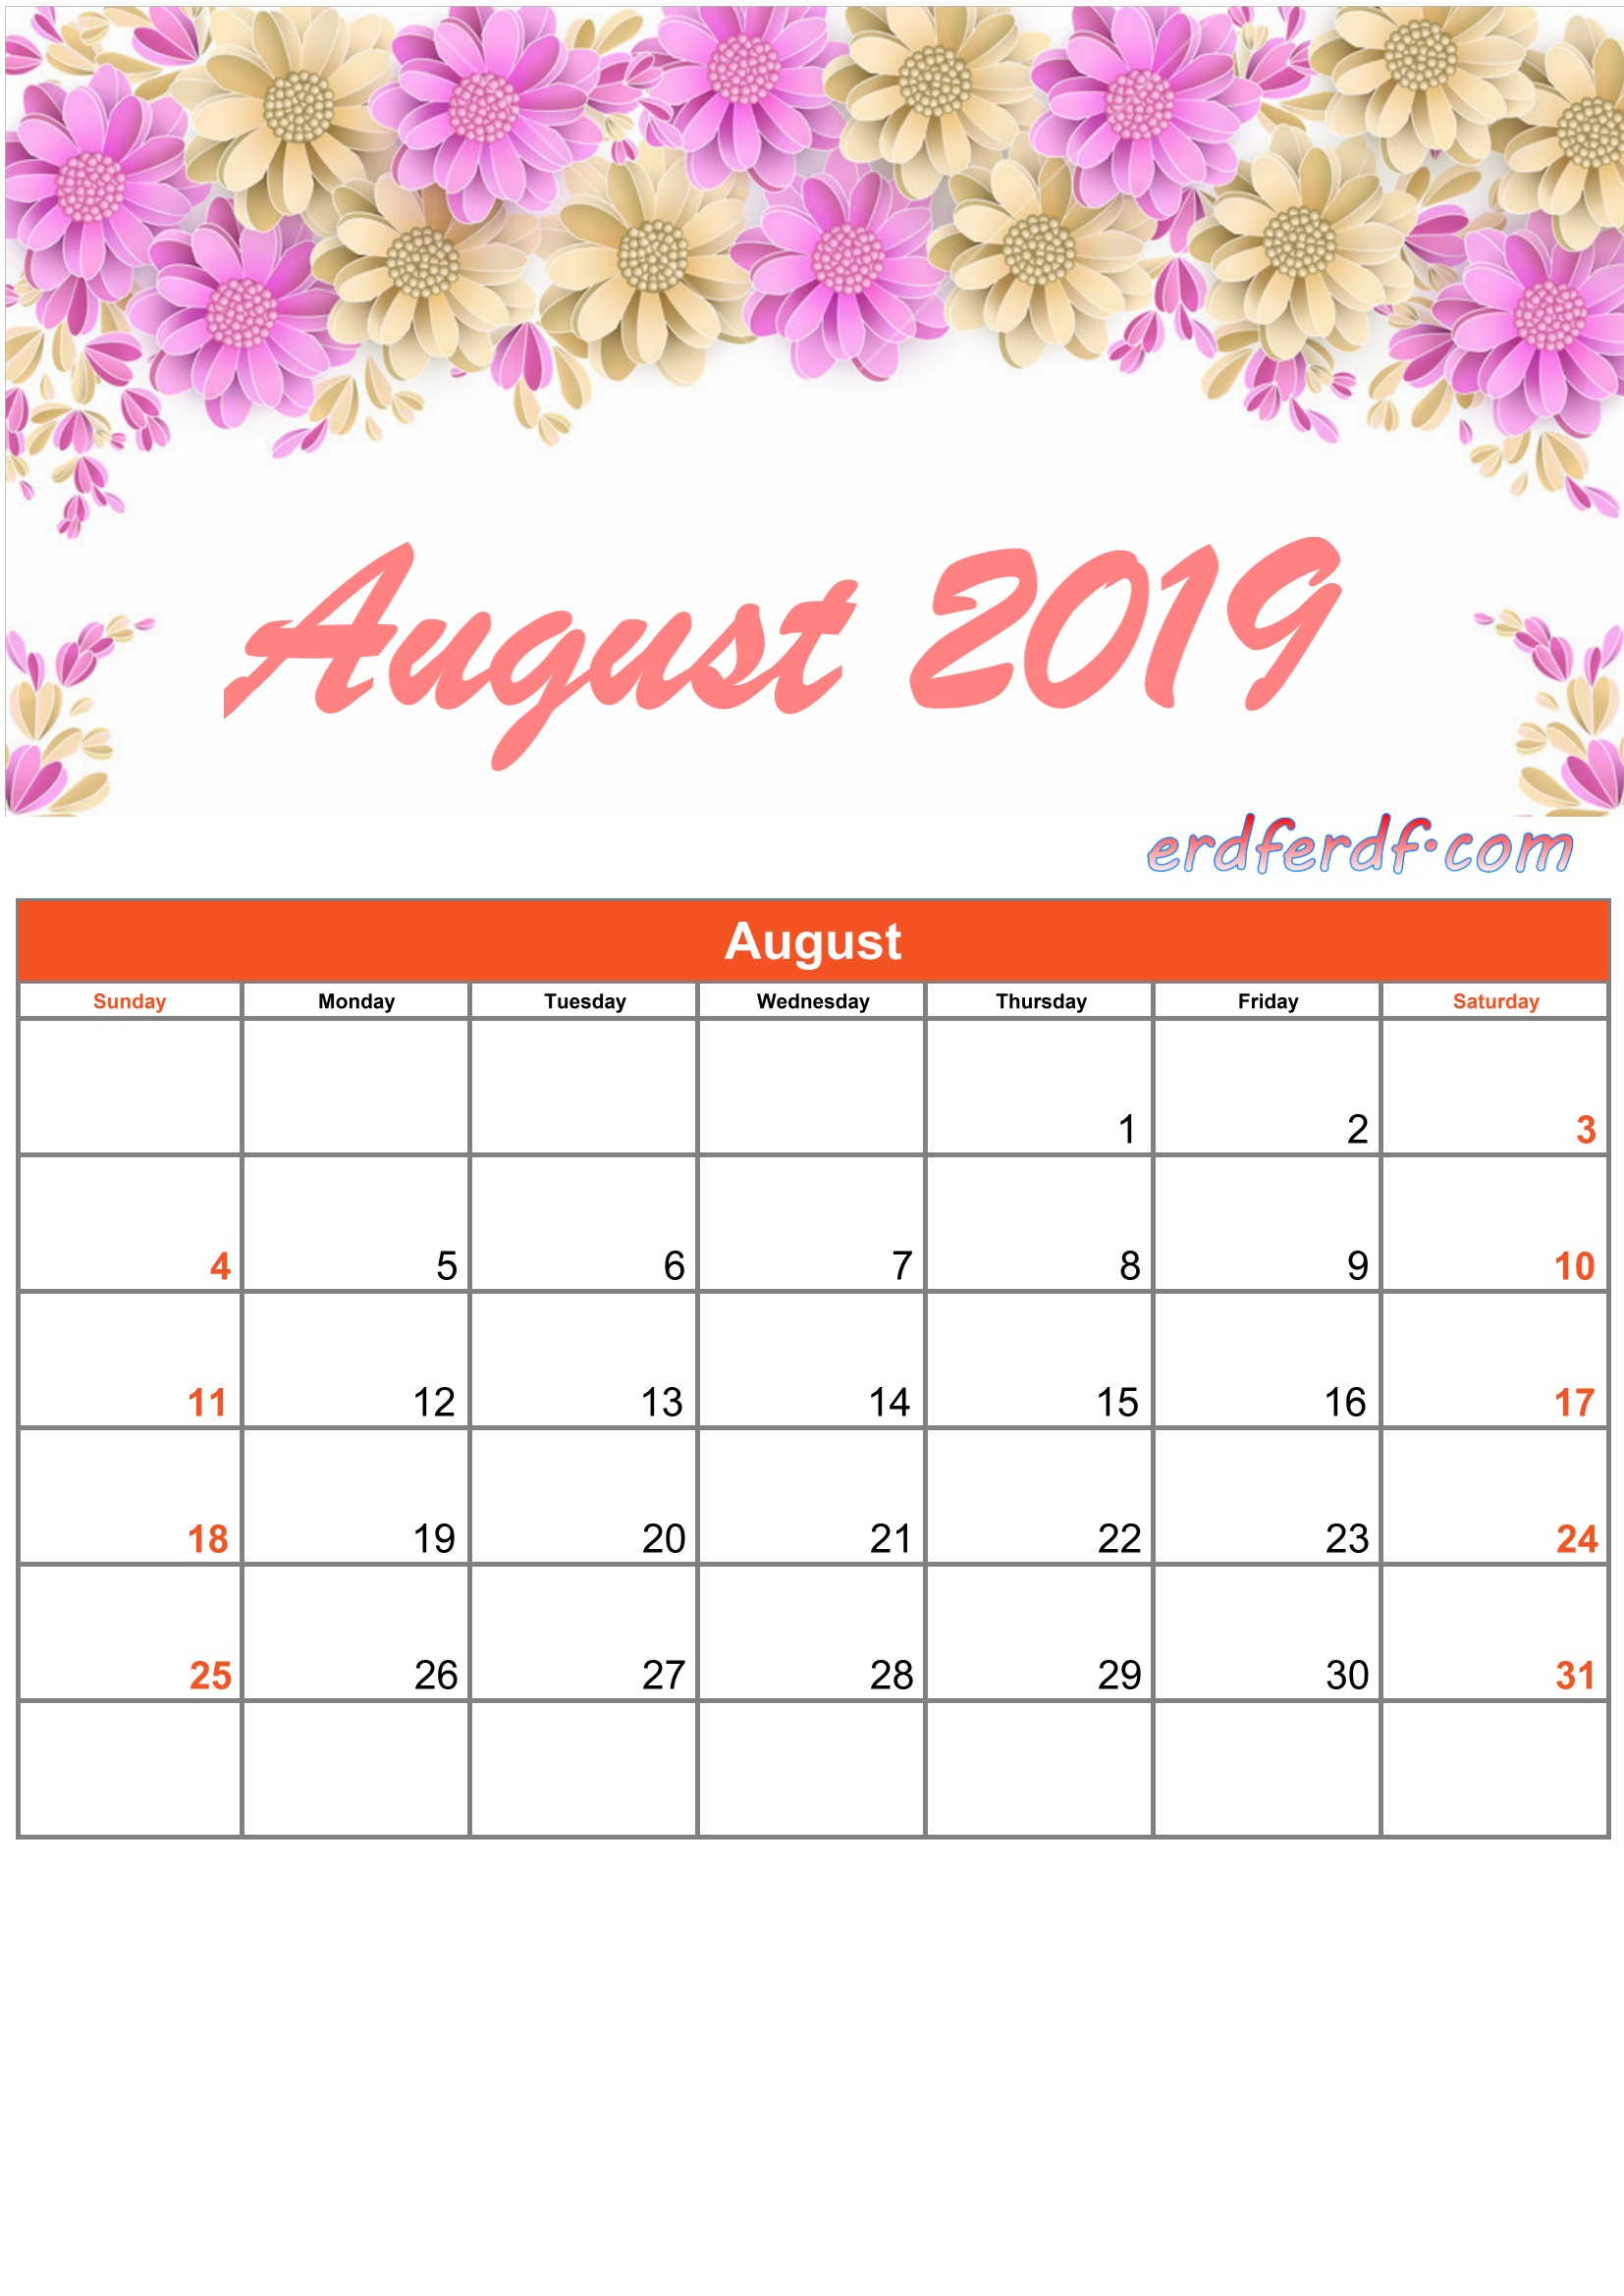 8 Augustus Printable Calendar 2019 Monthly